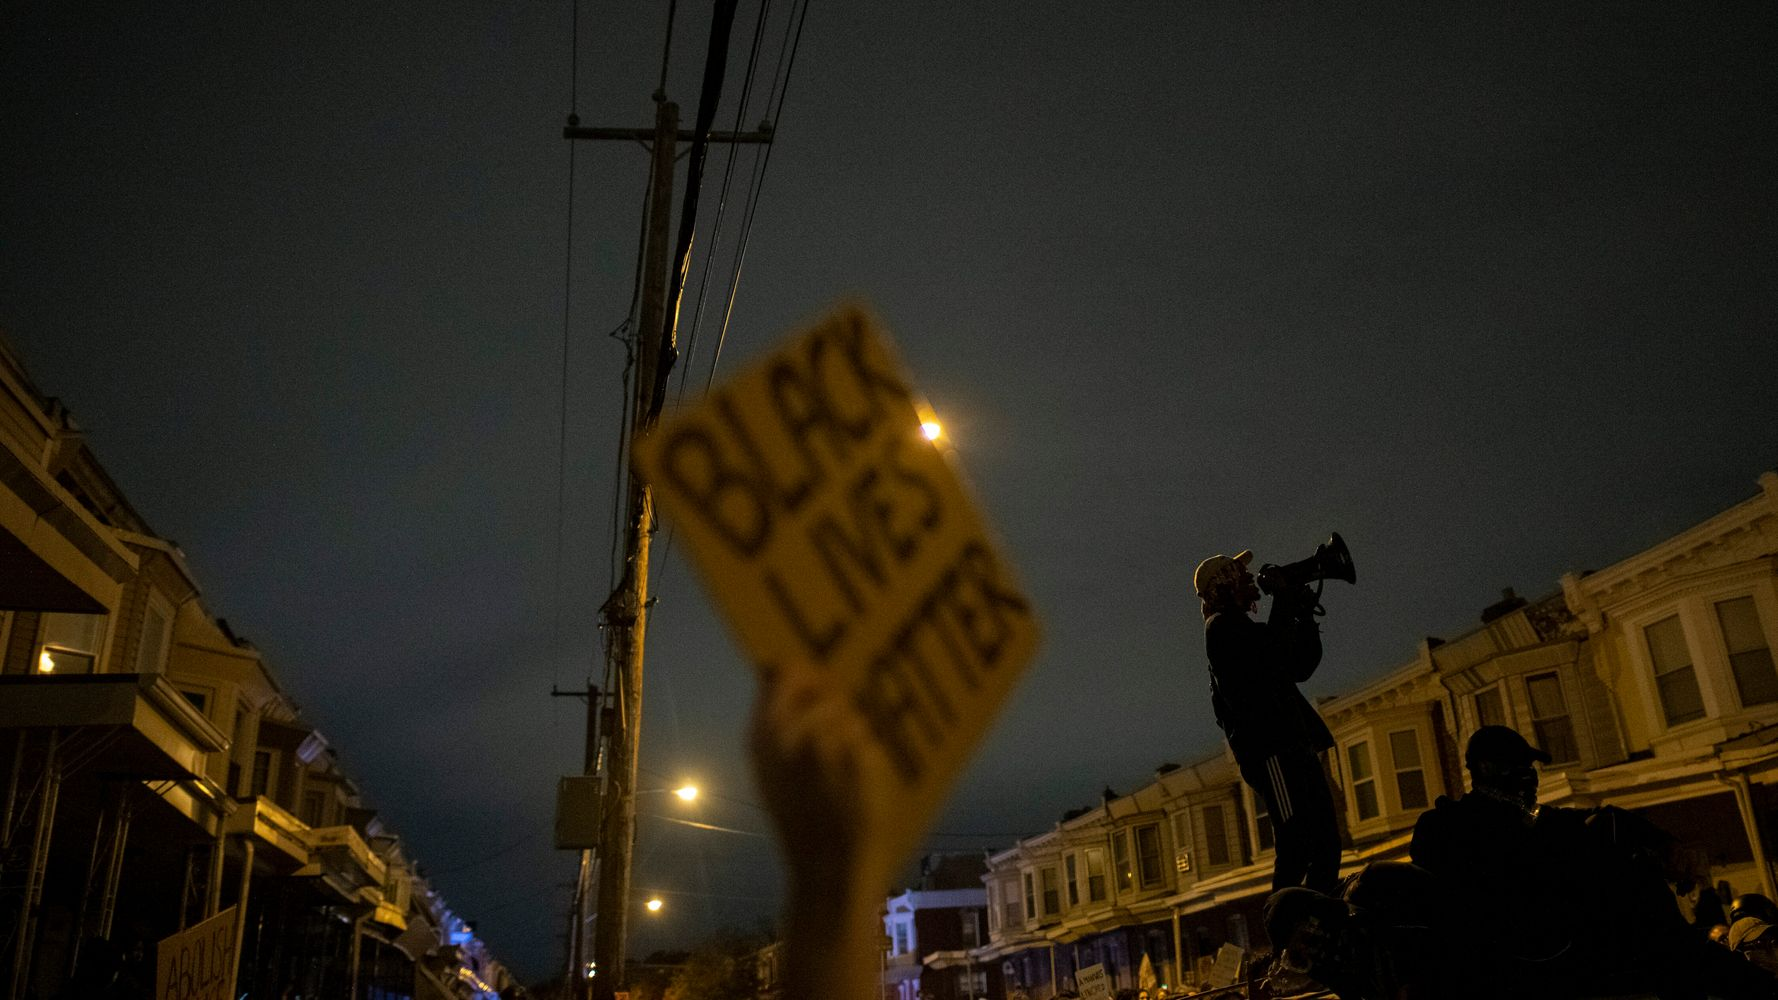 Amid More Protests Over Son's Police Death, Walter Wallace Sr. Says Violence 'Not Helping' 1